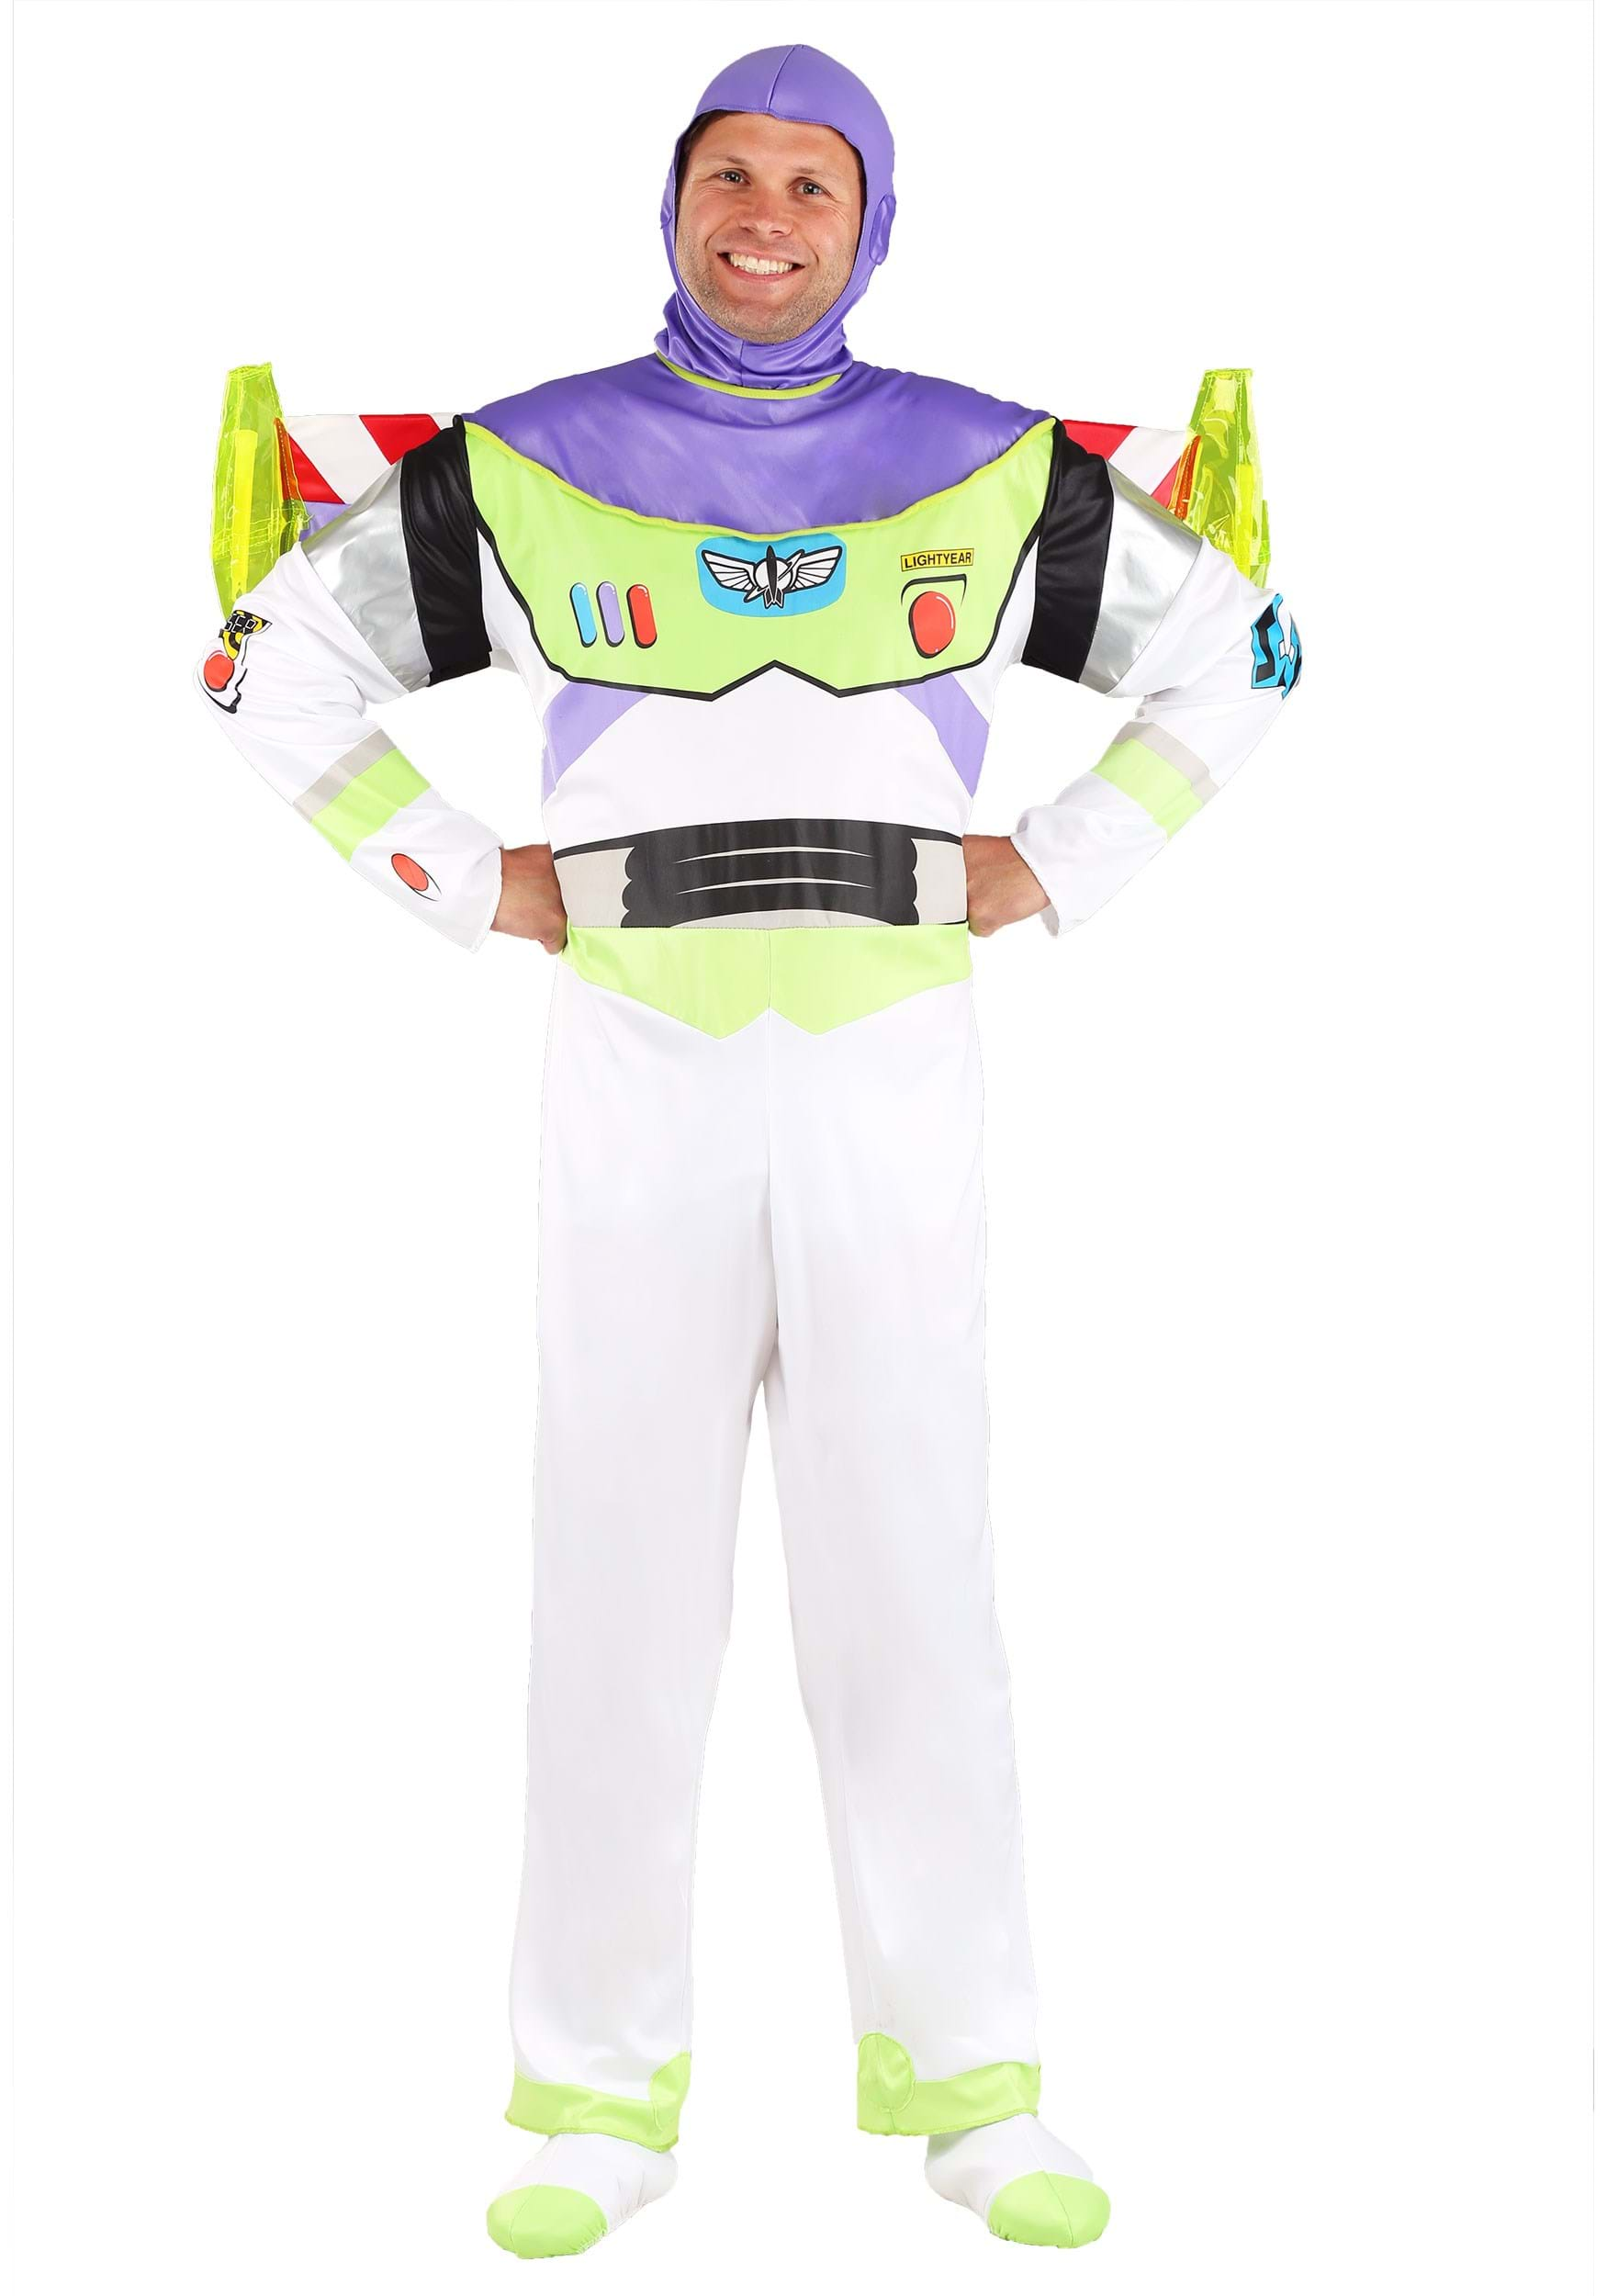 Buzz Lightyear Adult Costume  sc 1 st  Halloween Costume & Buzz Lightyear Adult Costume - Disney Buzz Lightyear Costumes